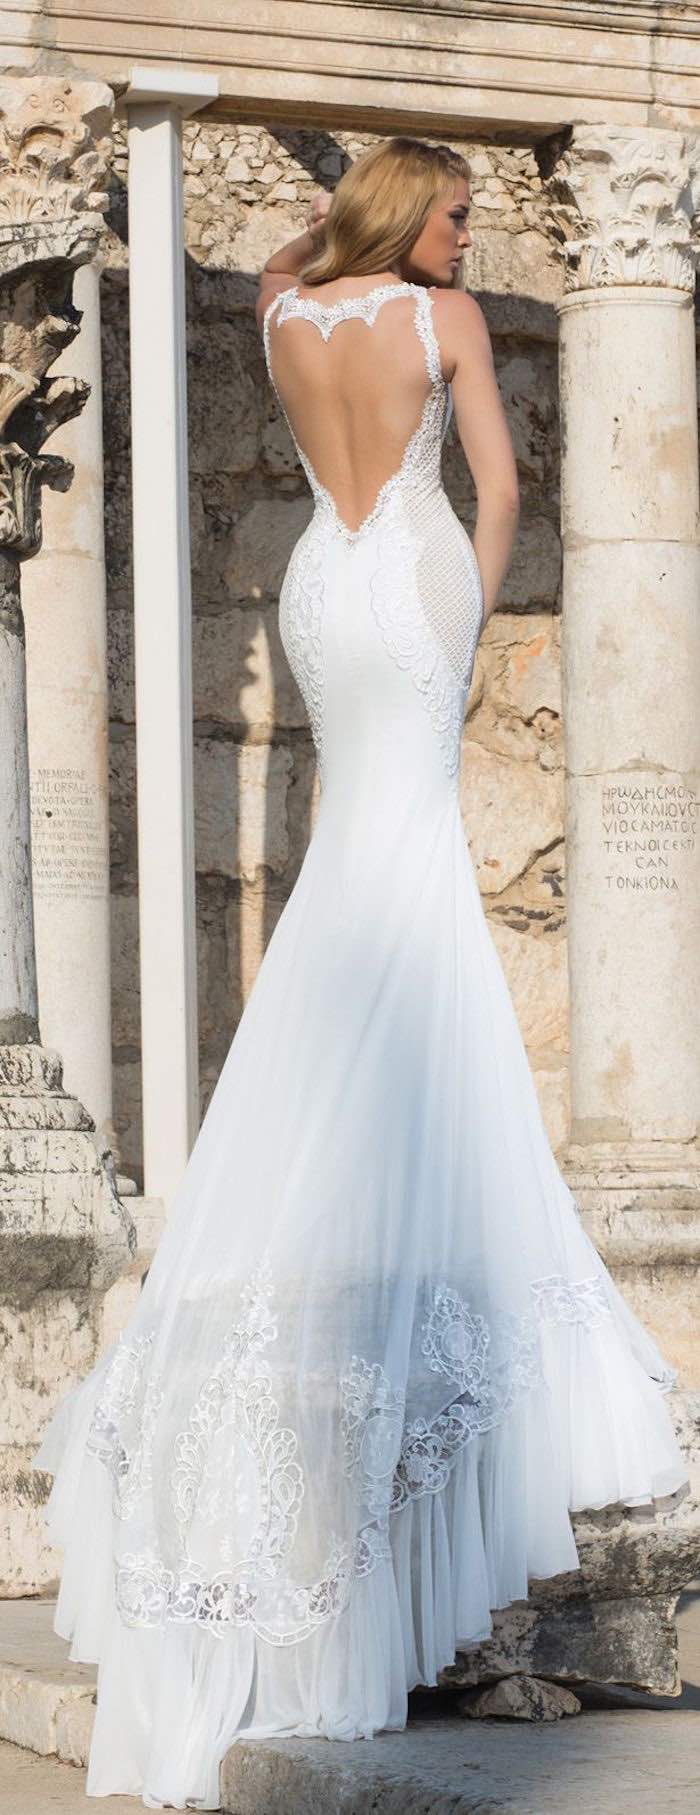 sexy-wedding-dresses-11-09112015-km